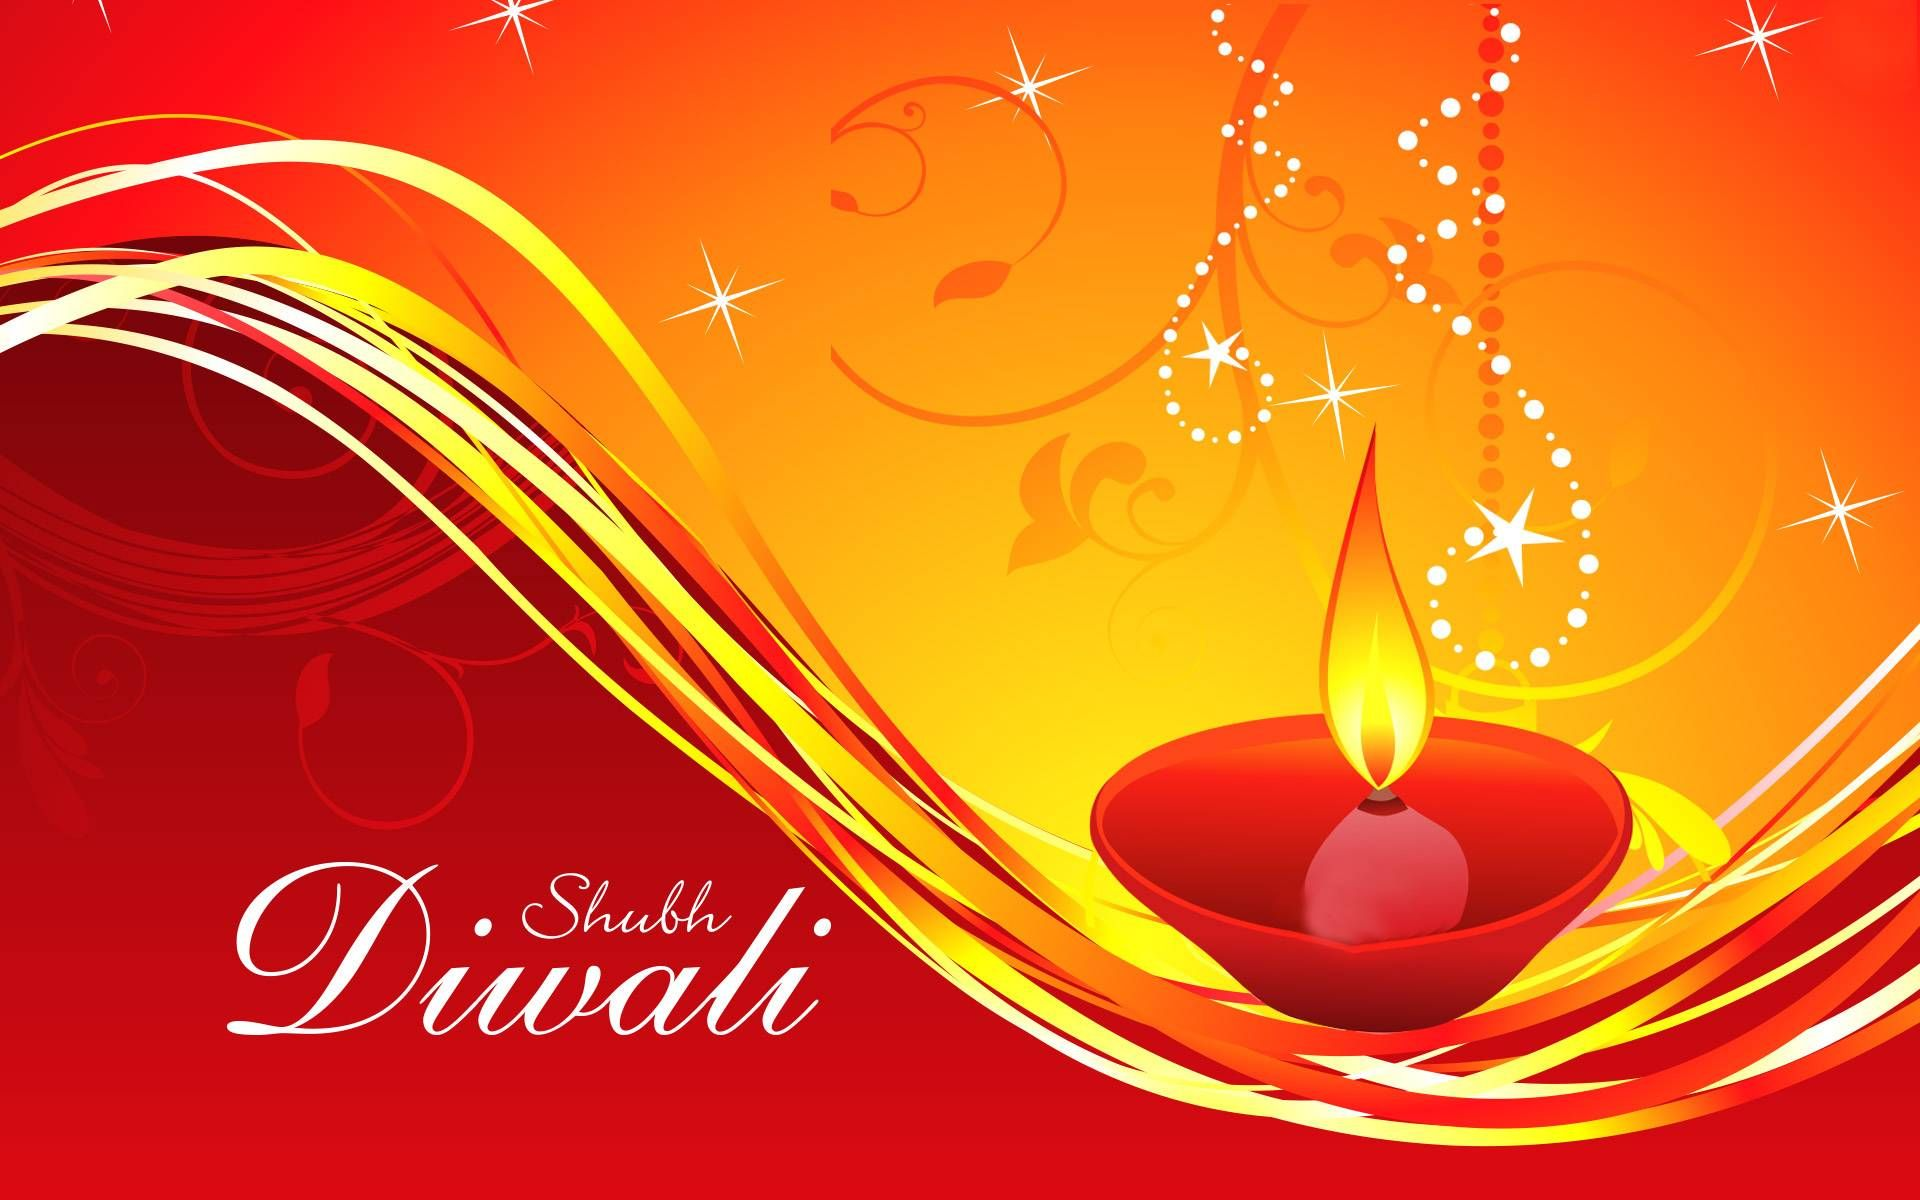 Diwali hd wallpapers good morning images pinterest diwali hd diwali hd wallpapers good morning images pinterest diwali hd wallpaper and morning images kristyandbryce Images